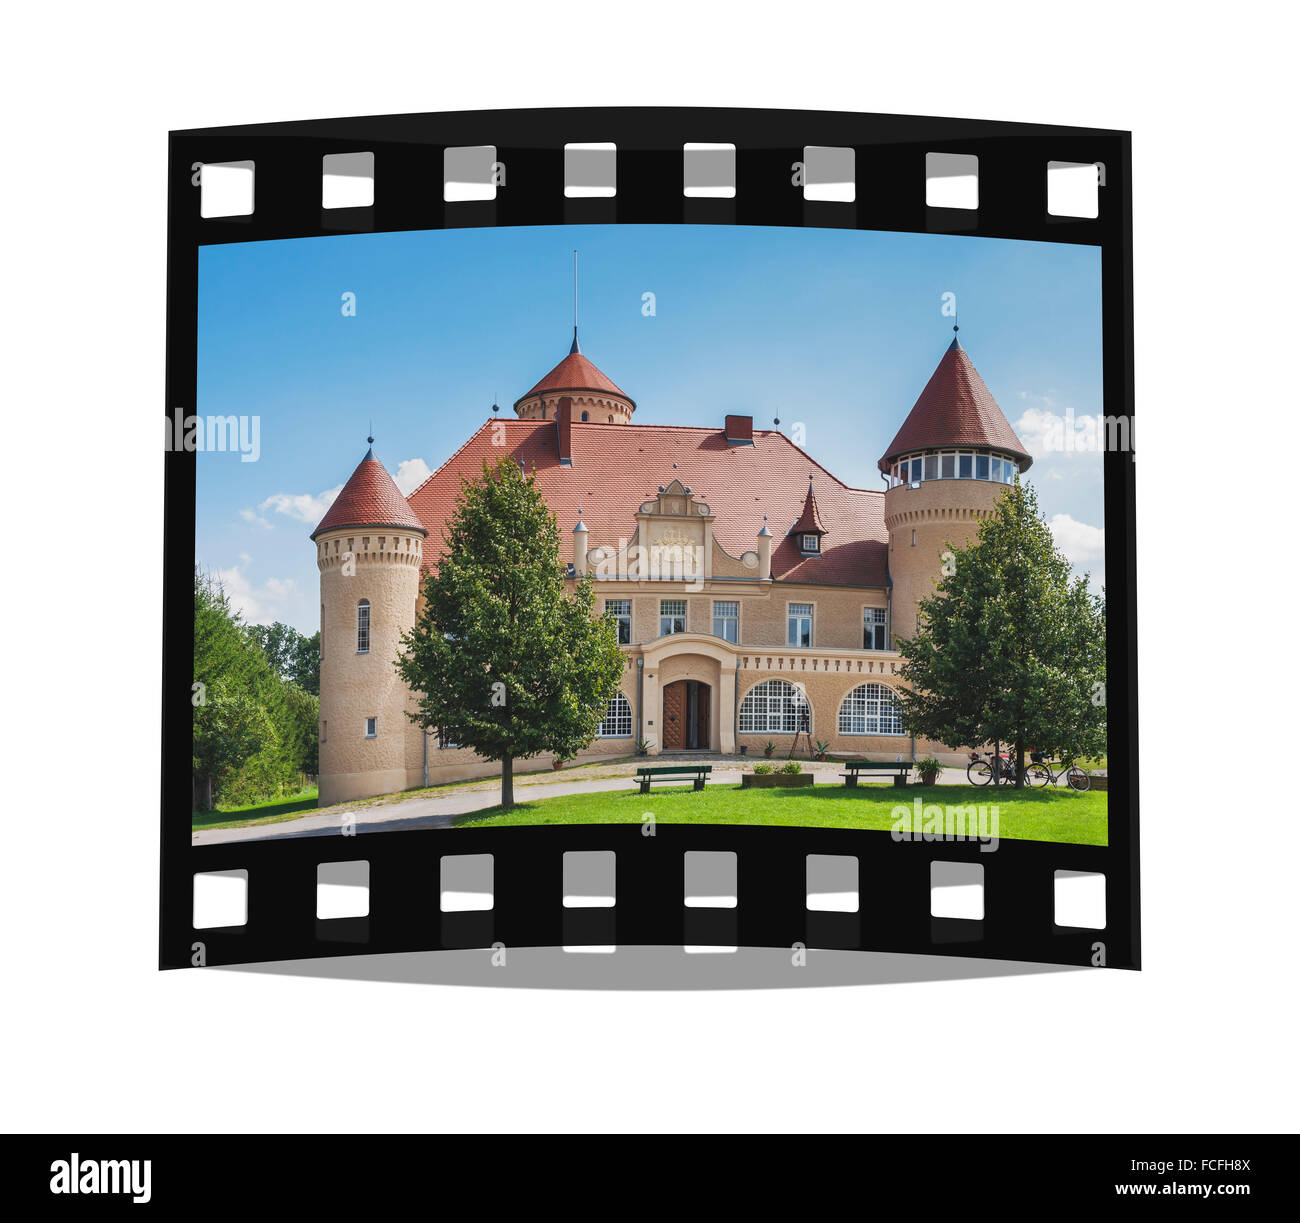 Mansion Stolpe Castle, Usedom Island, County Vorpommern-Greifswald, Mecklenburg-Western Pomerania, Germany, Europe - Stock Image